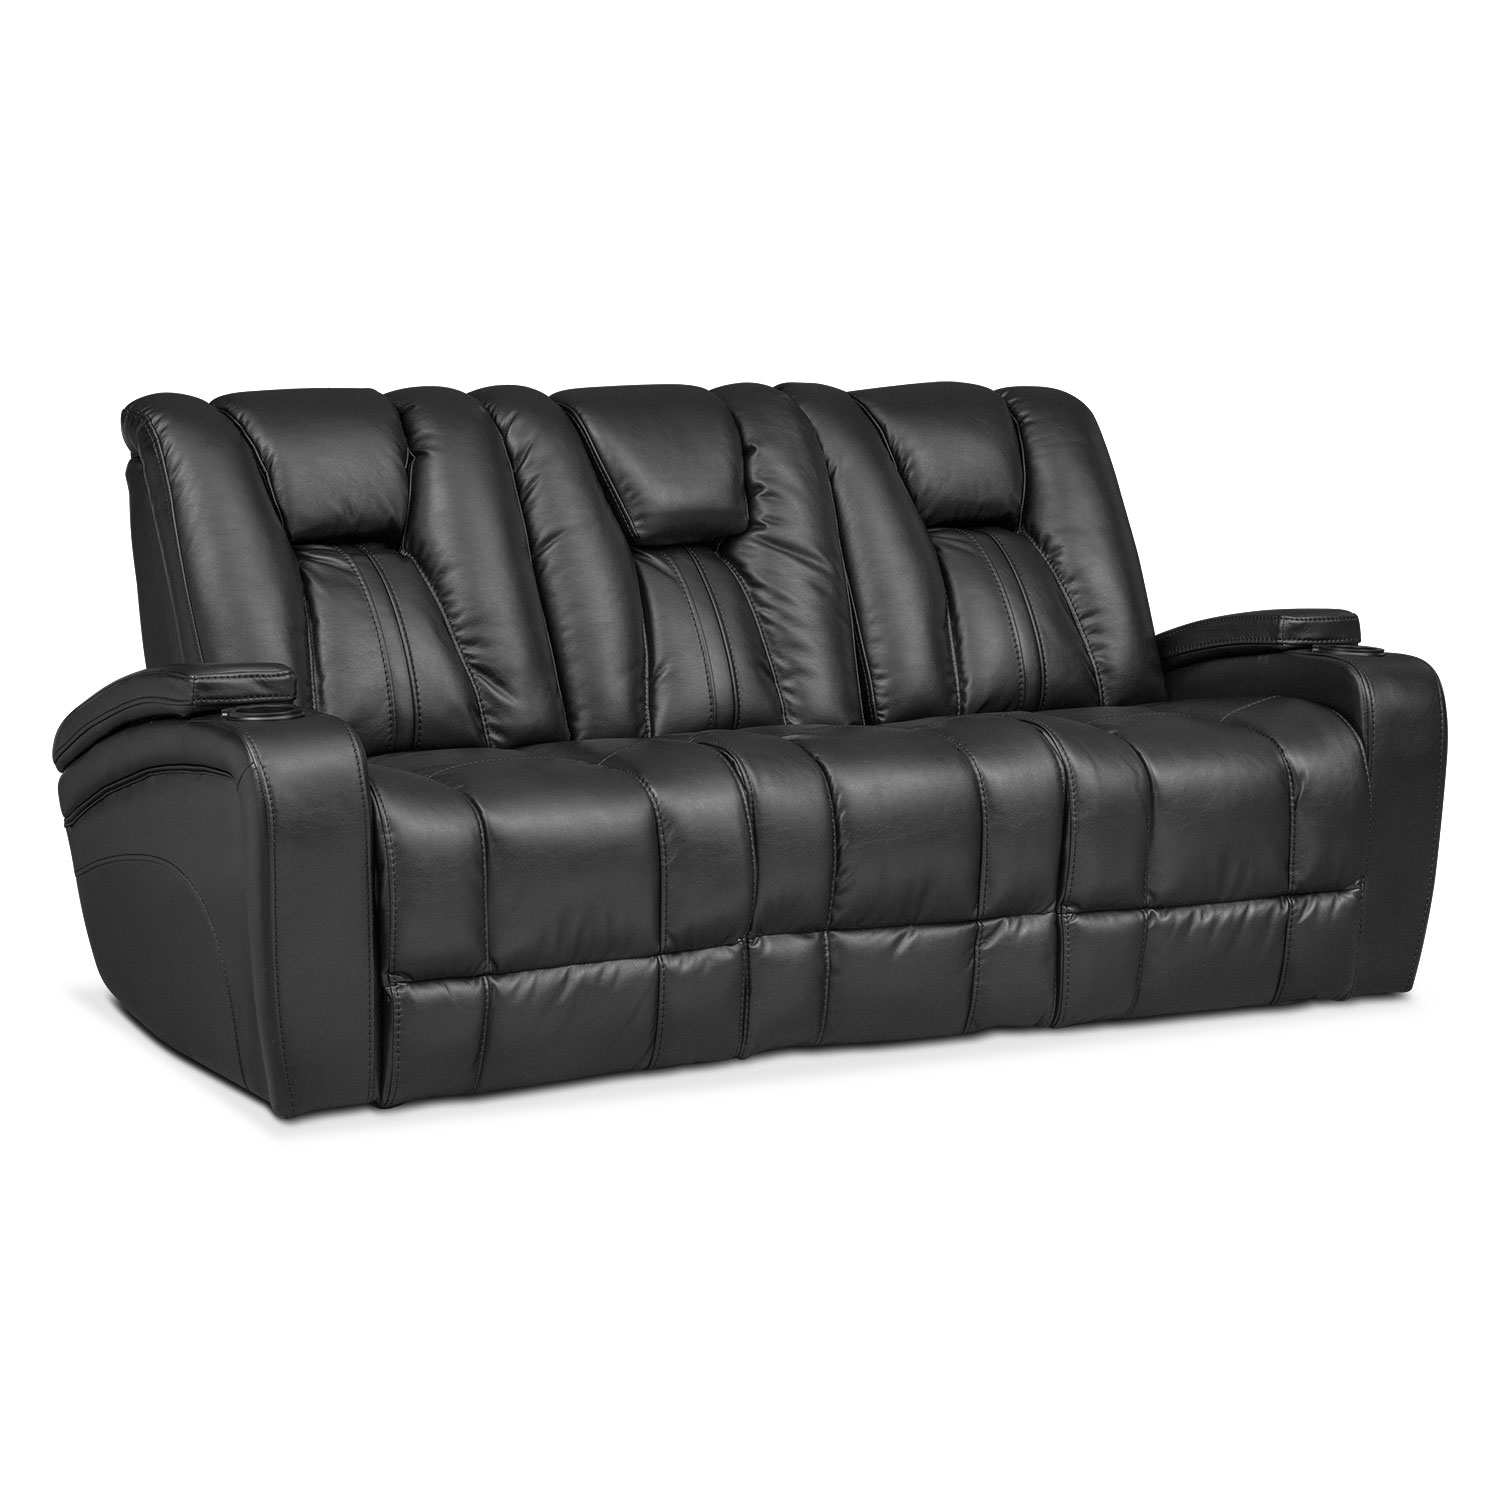 Pulsar Dual Power Reclining Sofa Black